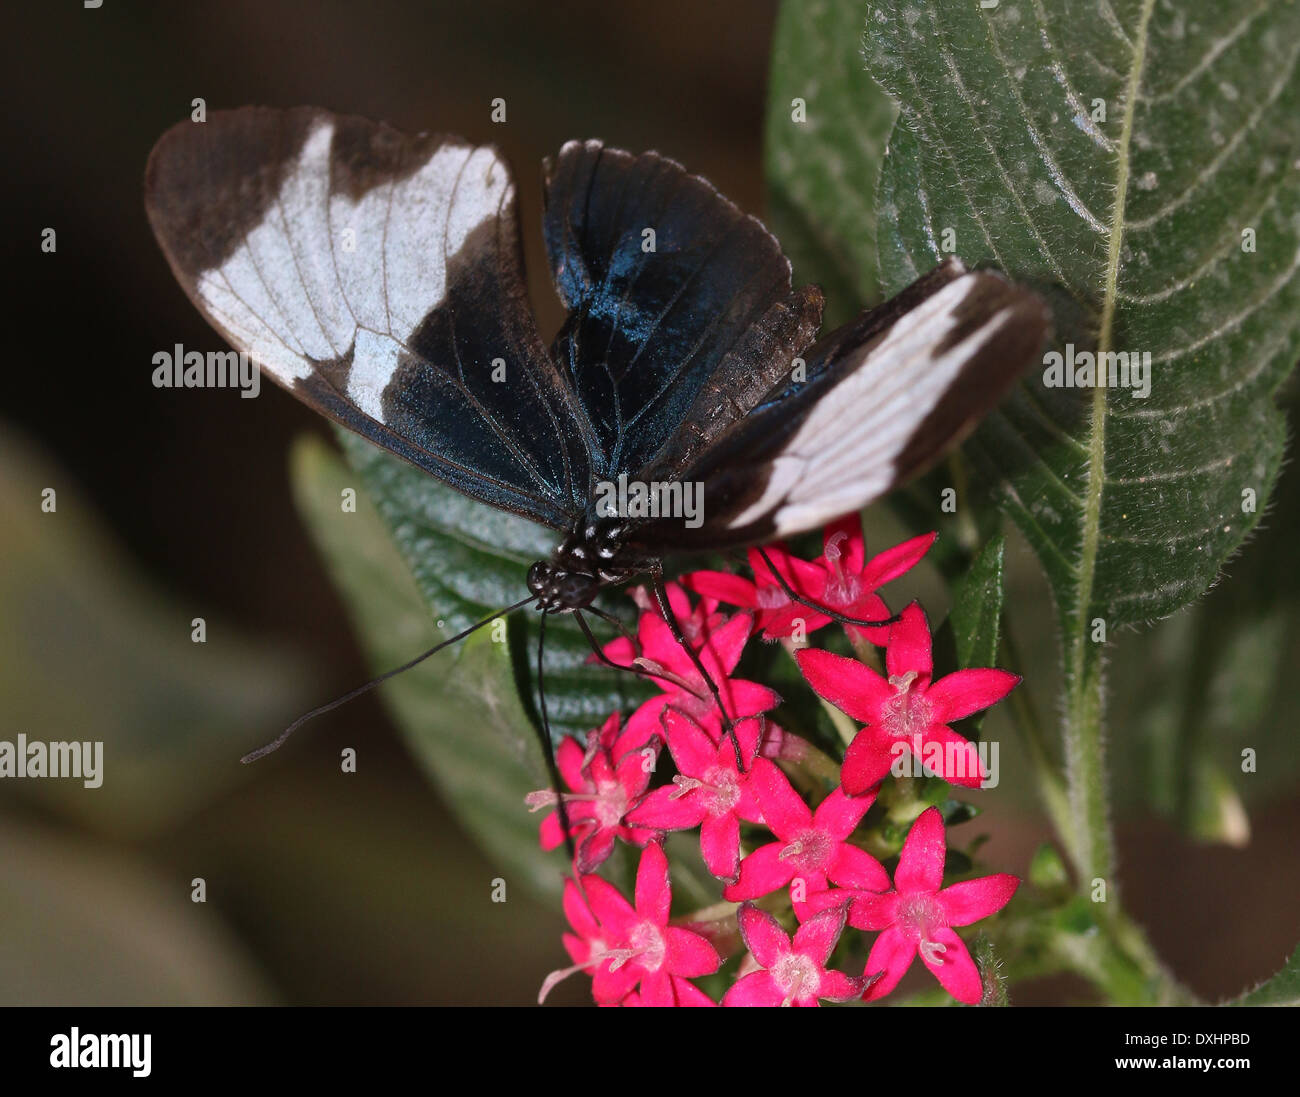 Sapho Longwing (Heliconius sapho) with wings opened, foraging on a red flower Stock Photo